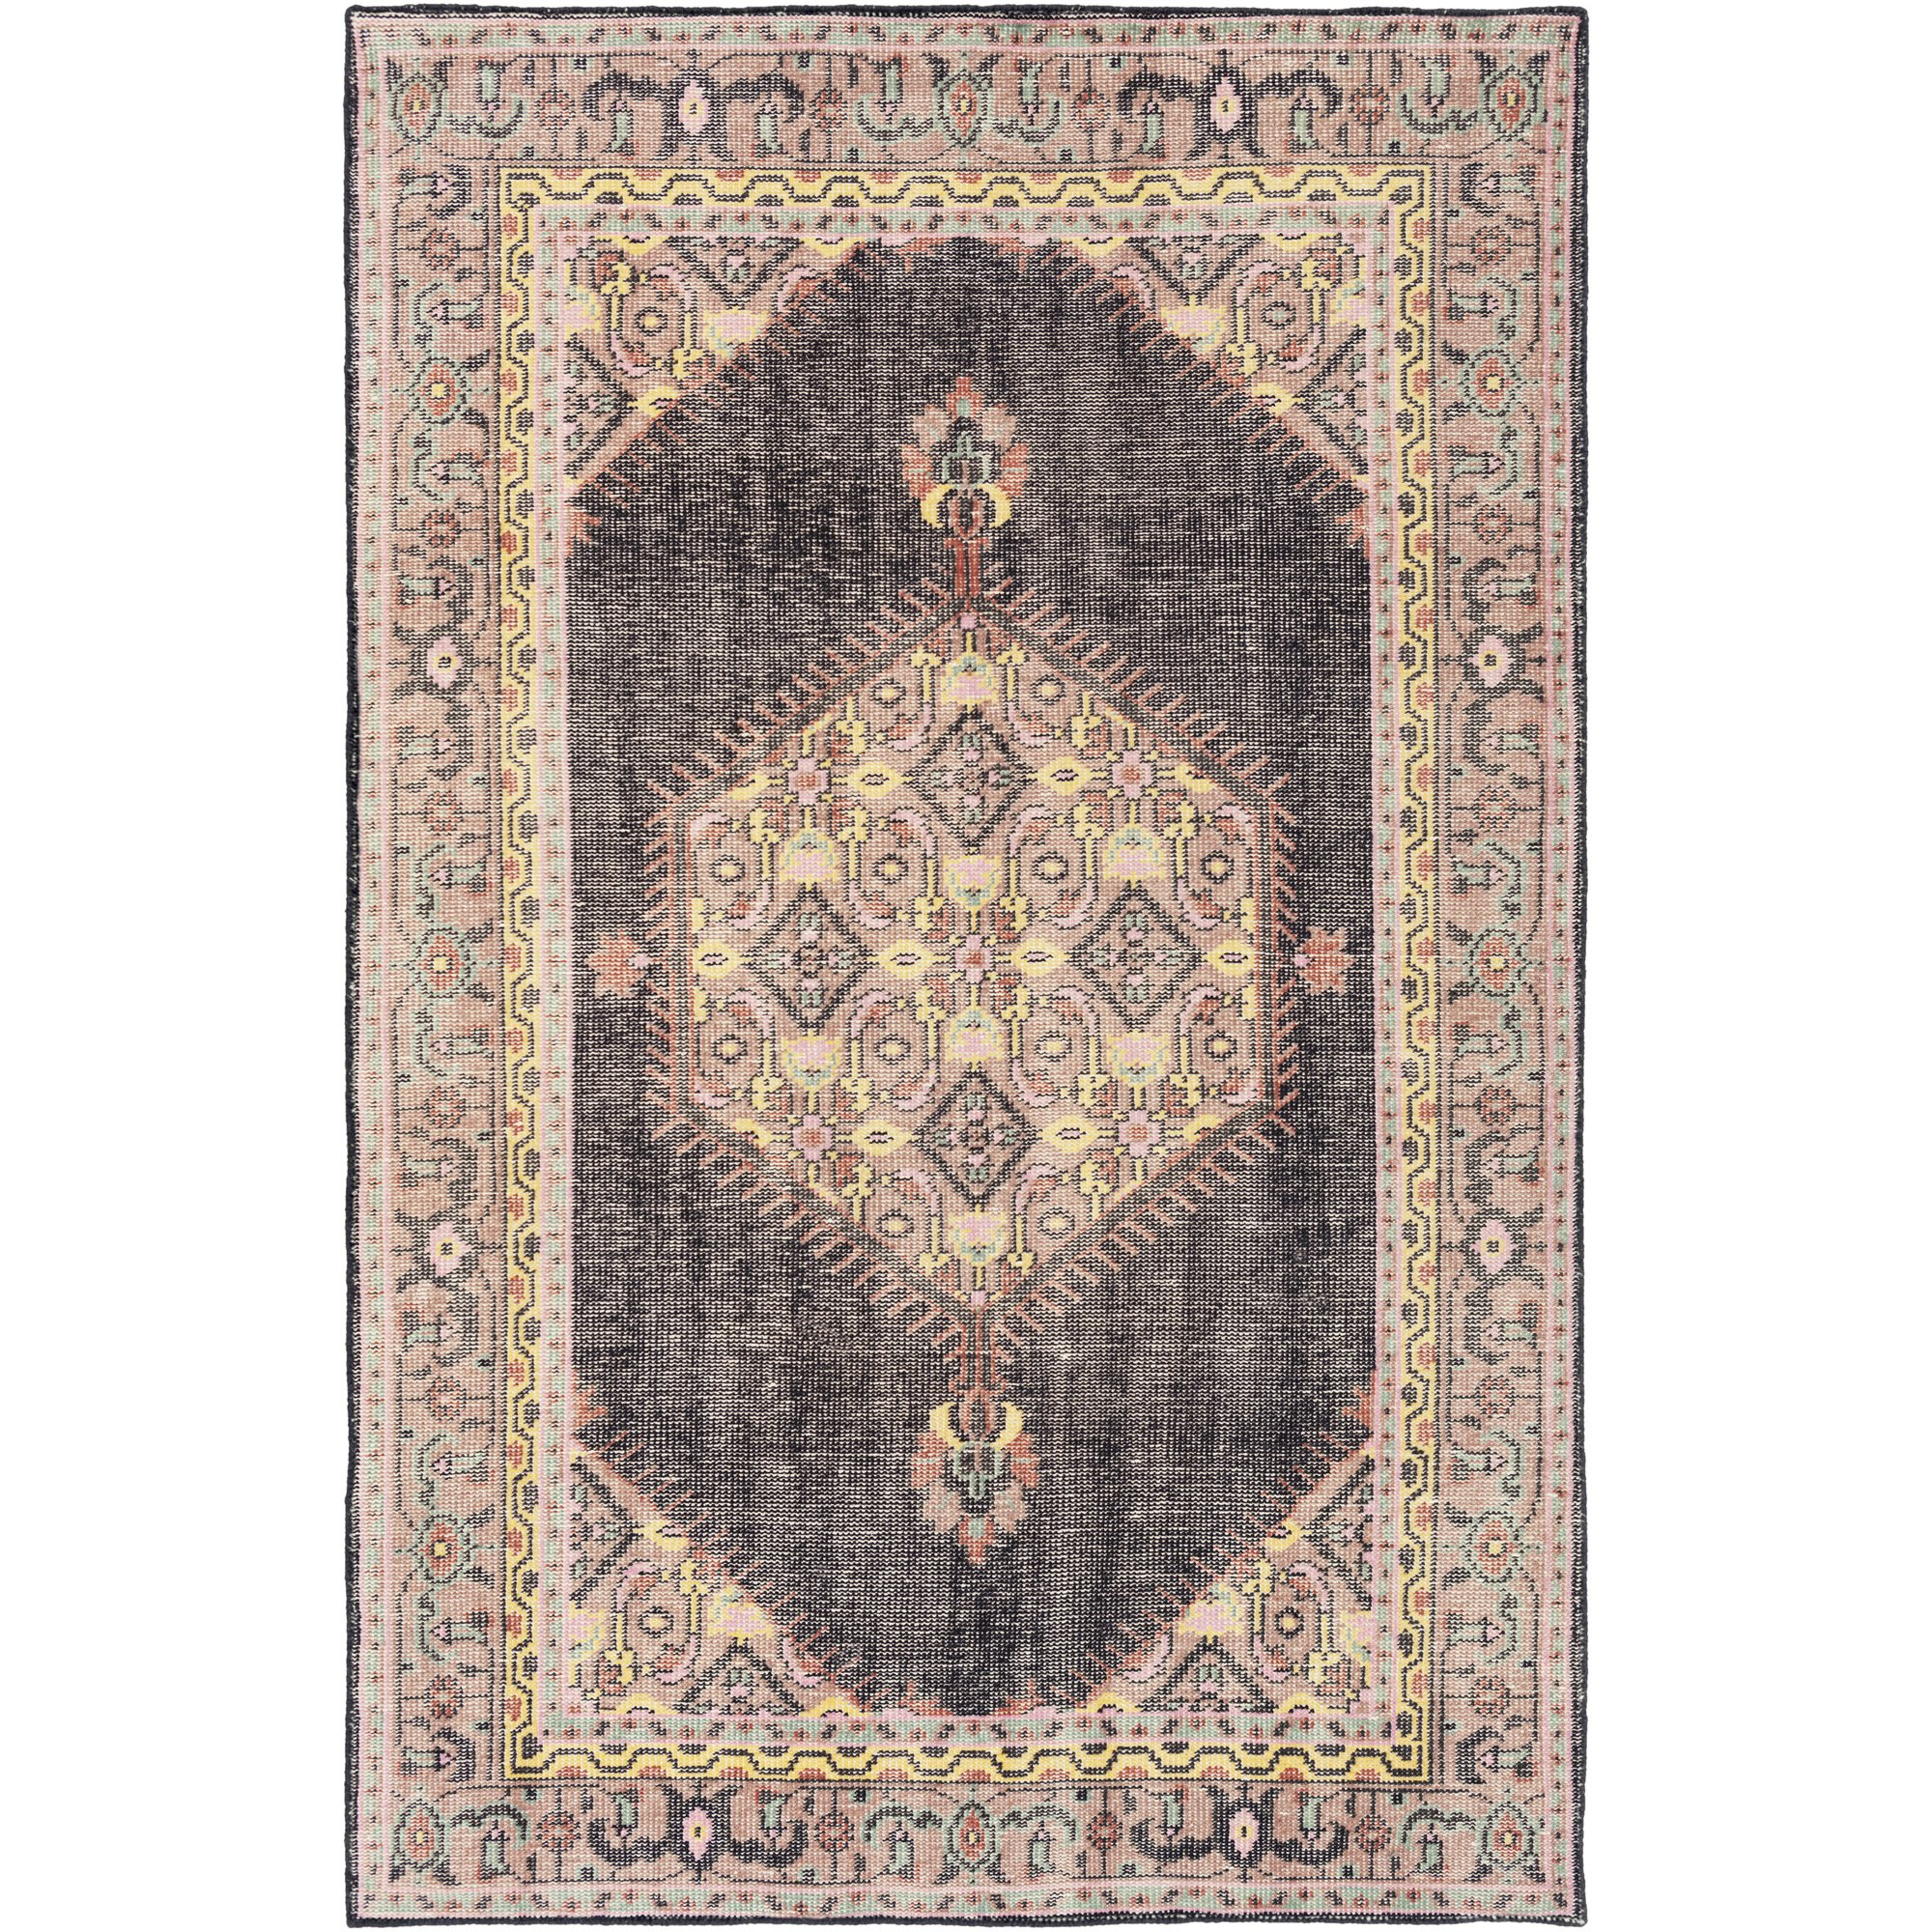 Surya Zahra ZHA-4004 Hand Knotted Classic Accent Rug, 3.6 by 5.6-Feet